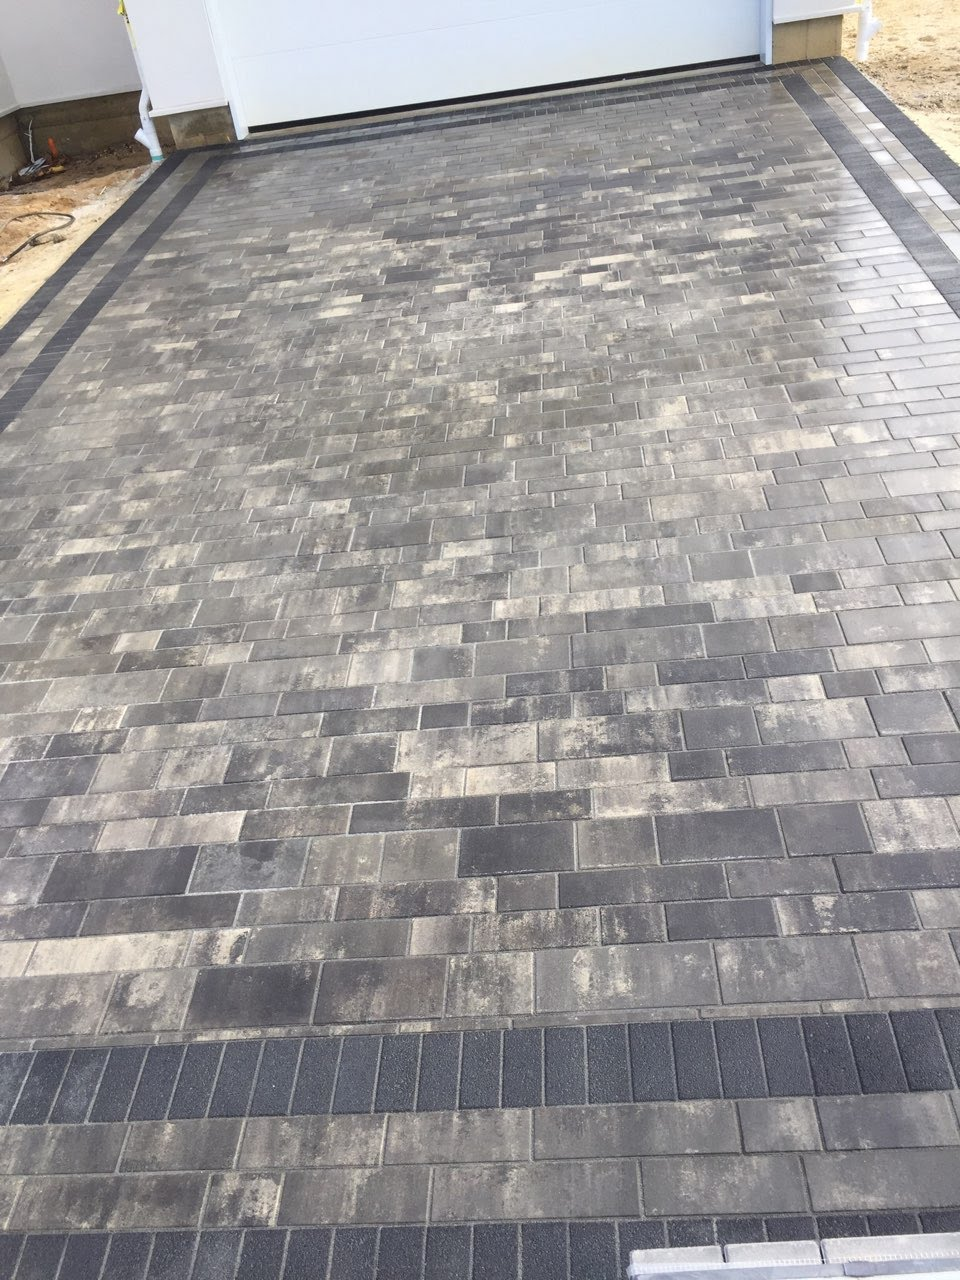 Calgo Gardens Landscaping & Nursery Constructs Highly Refined Driveway Project with Artline Pavers in Lakewood, NJ